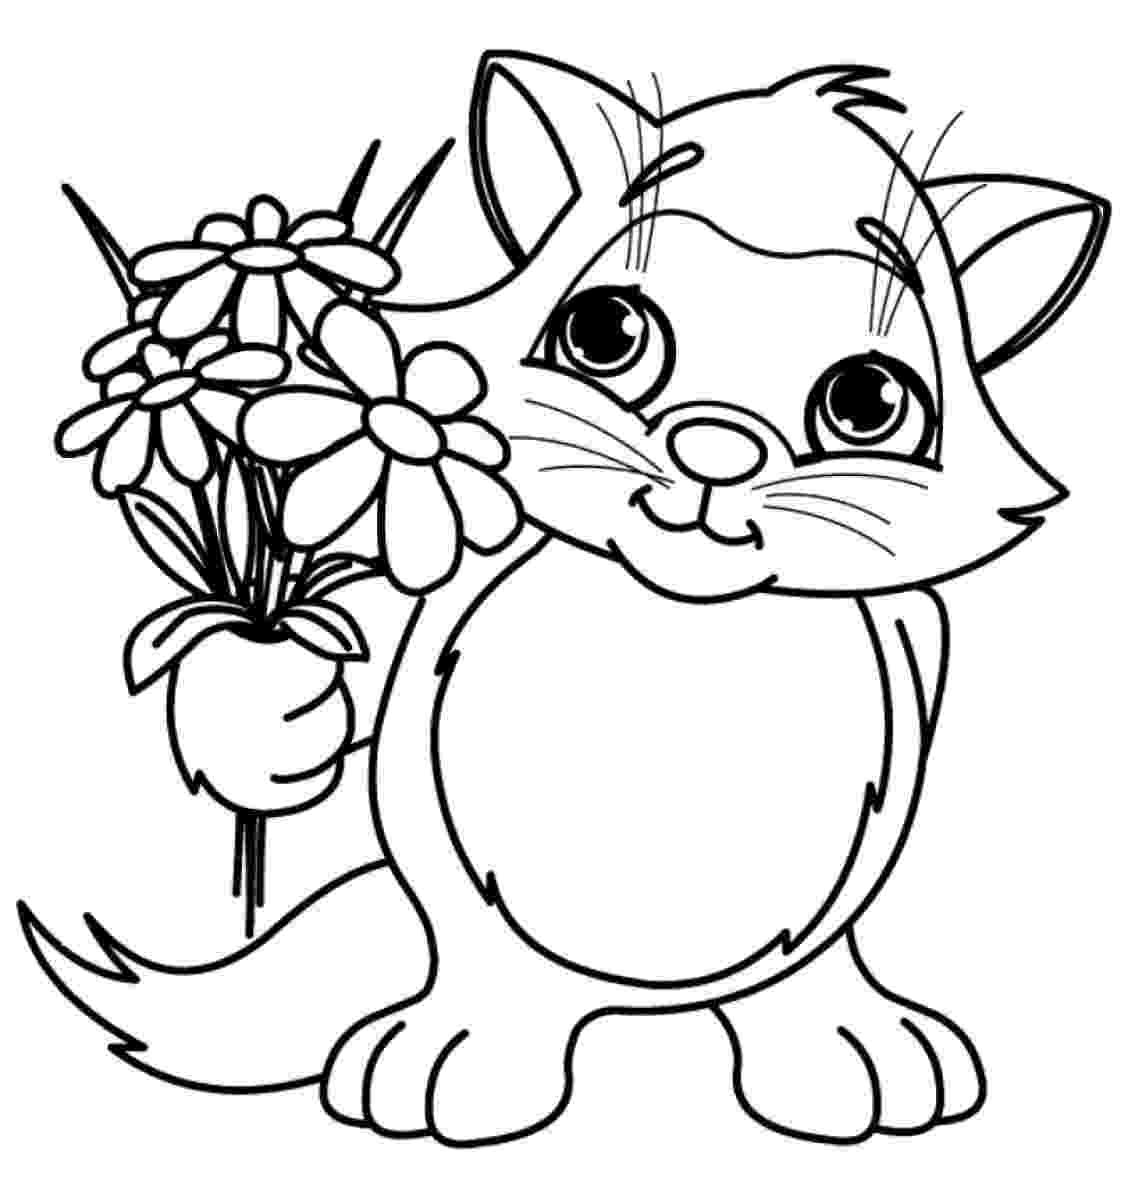 coloring pages of spring flowers spring flowers coloring pages gtgt disney coloring pages flowers coloring of spring pages